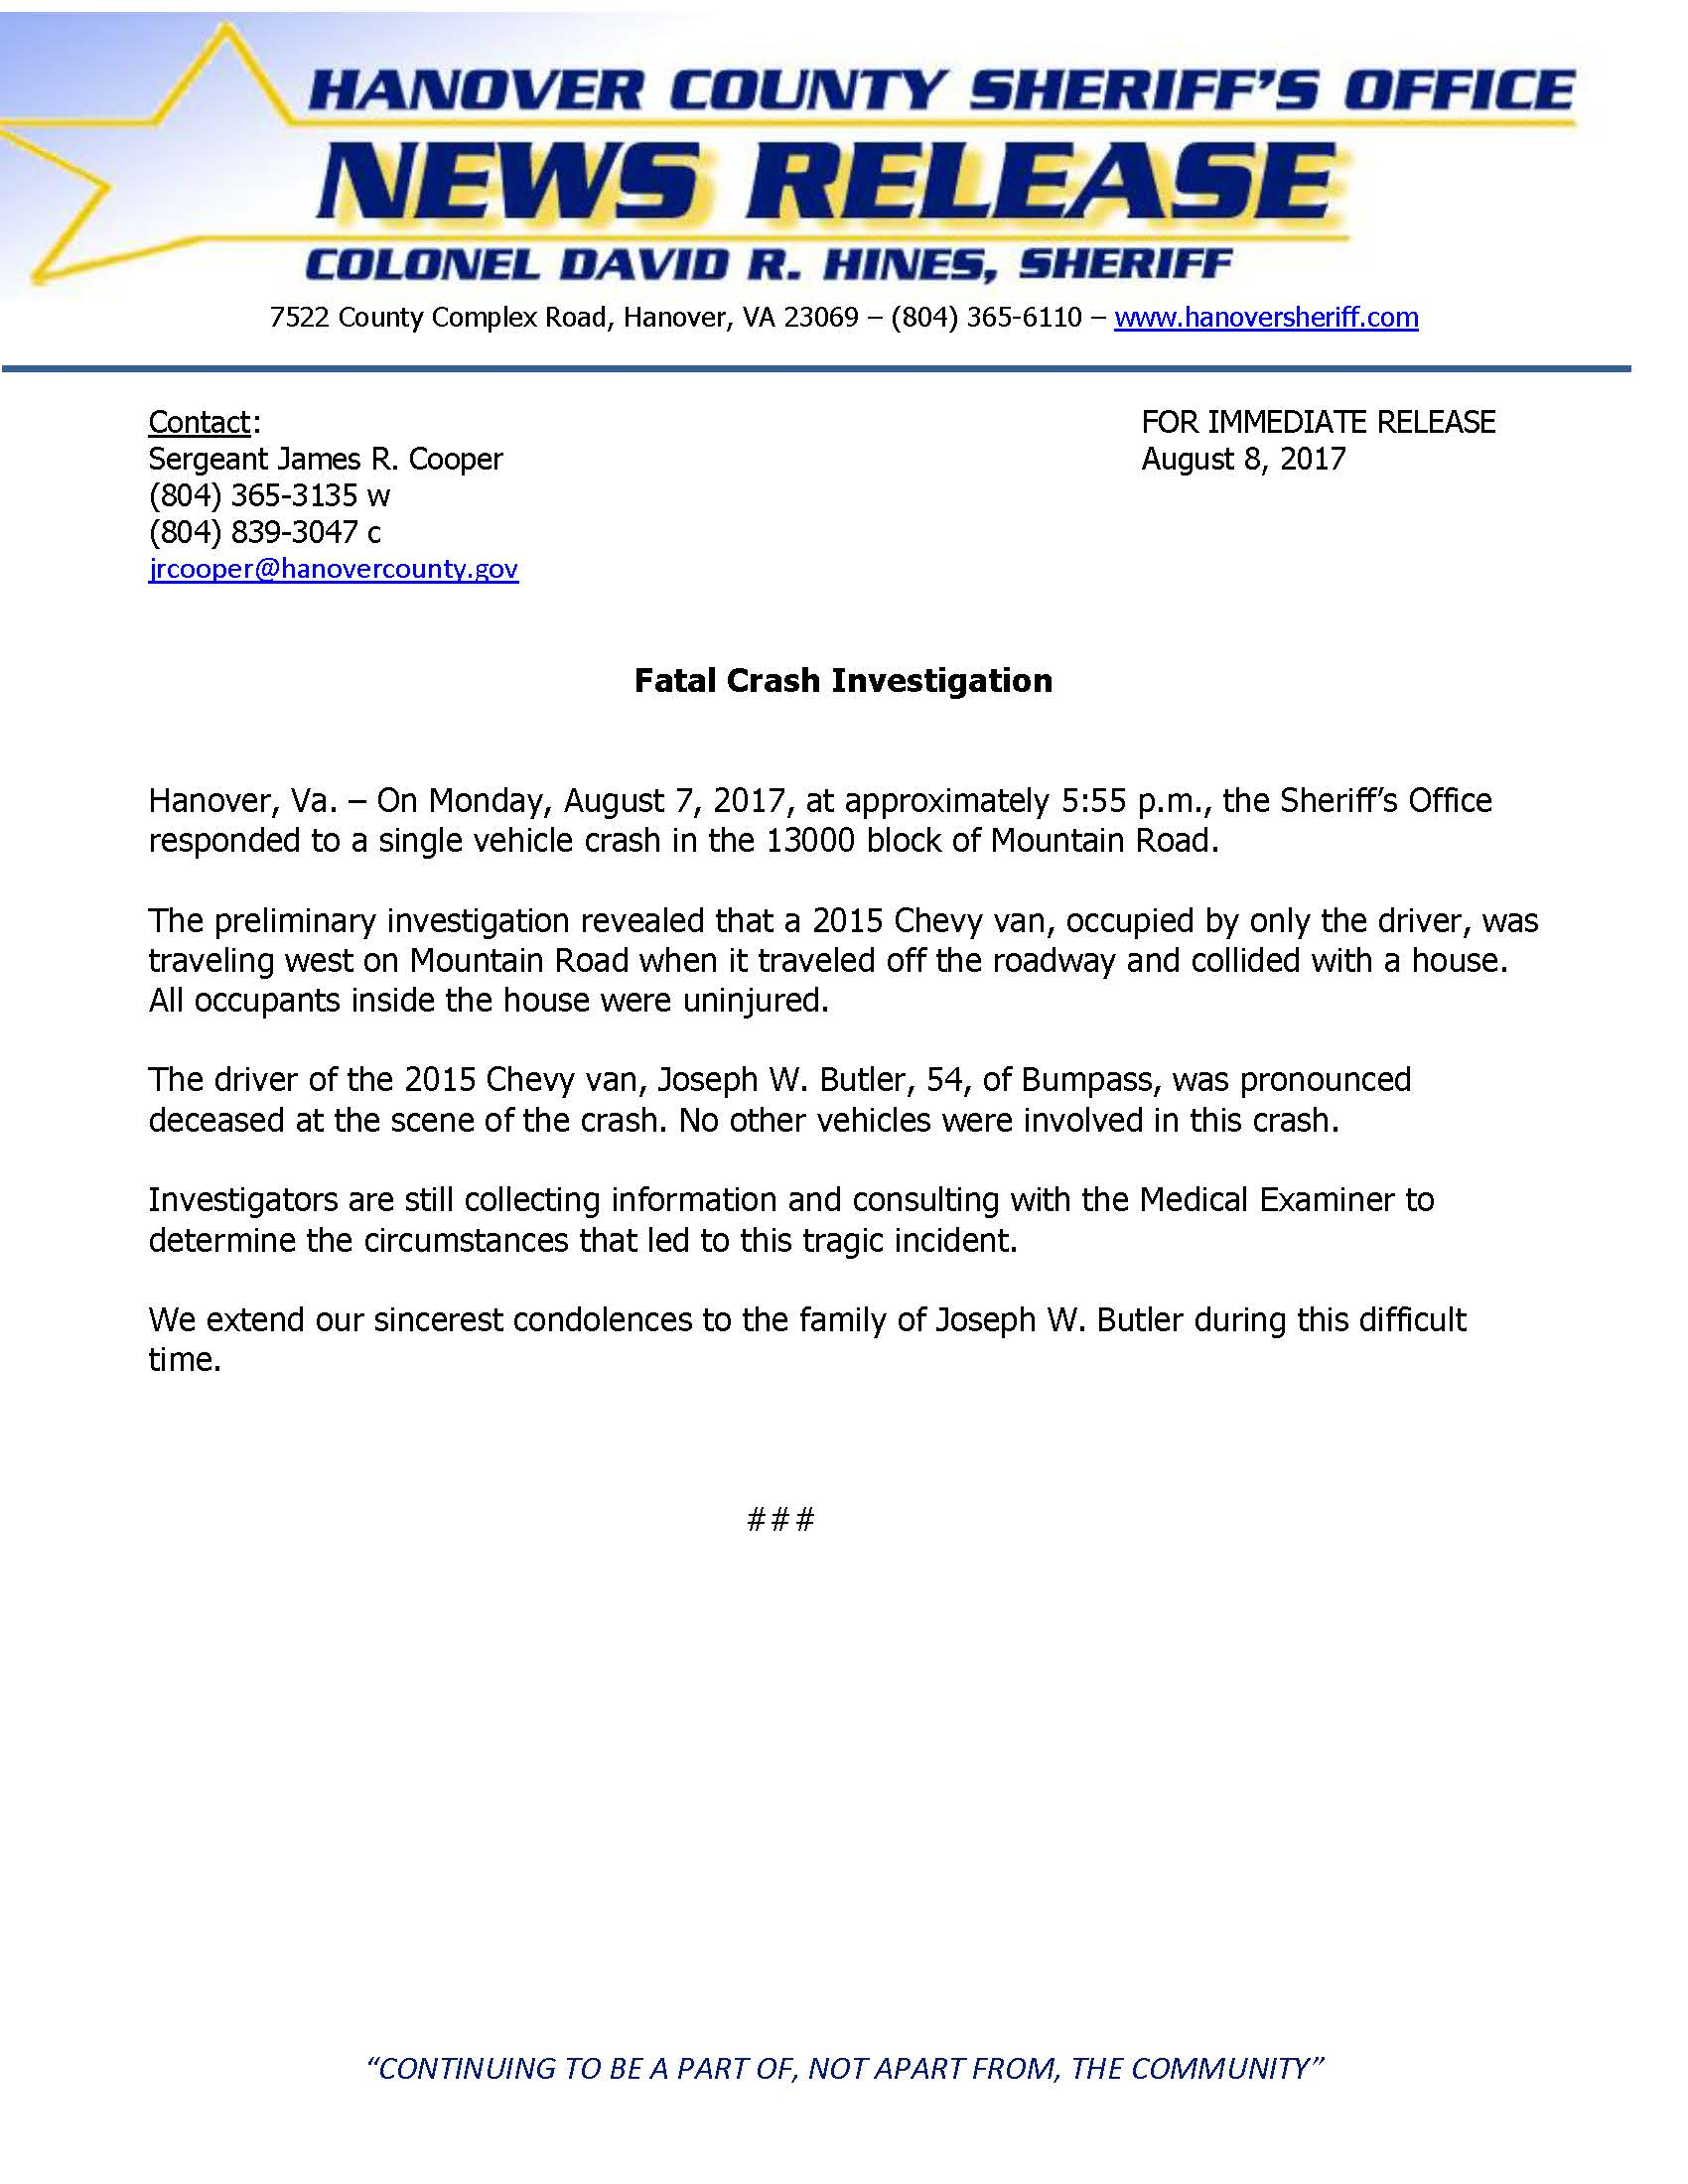 HCSO - Fatal Crash - Mountain Road- August 2017